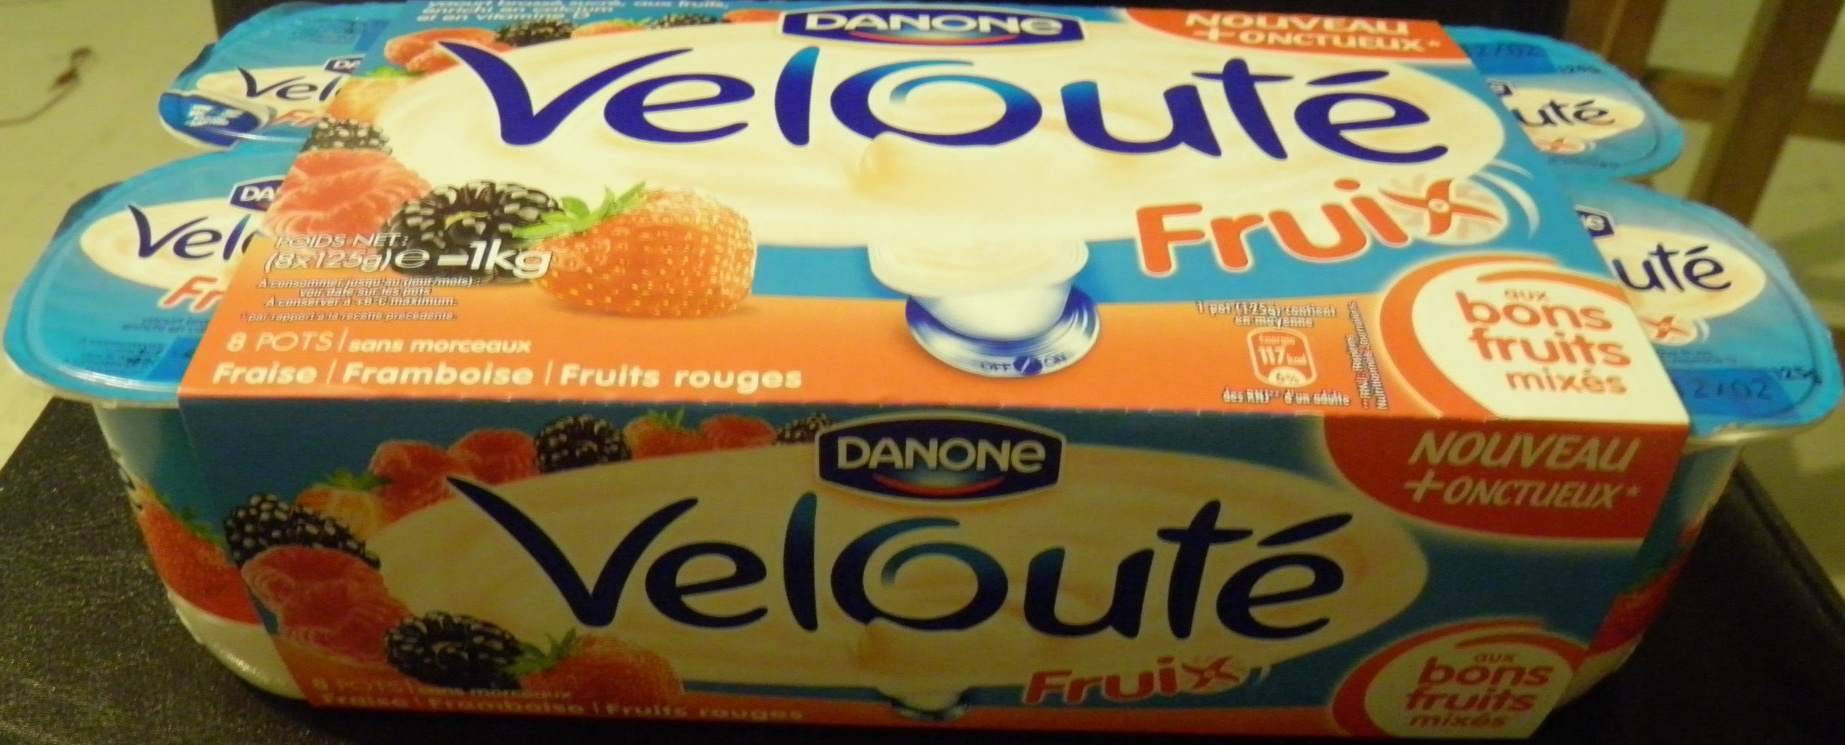 Velouté Fruix (Fraise, Framboise, Fruits rouges) 8 Pots - Product